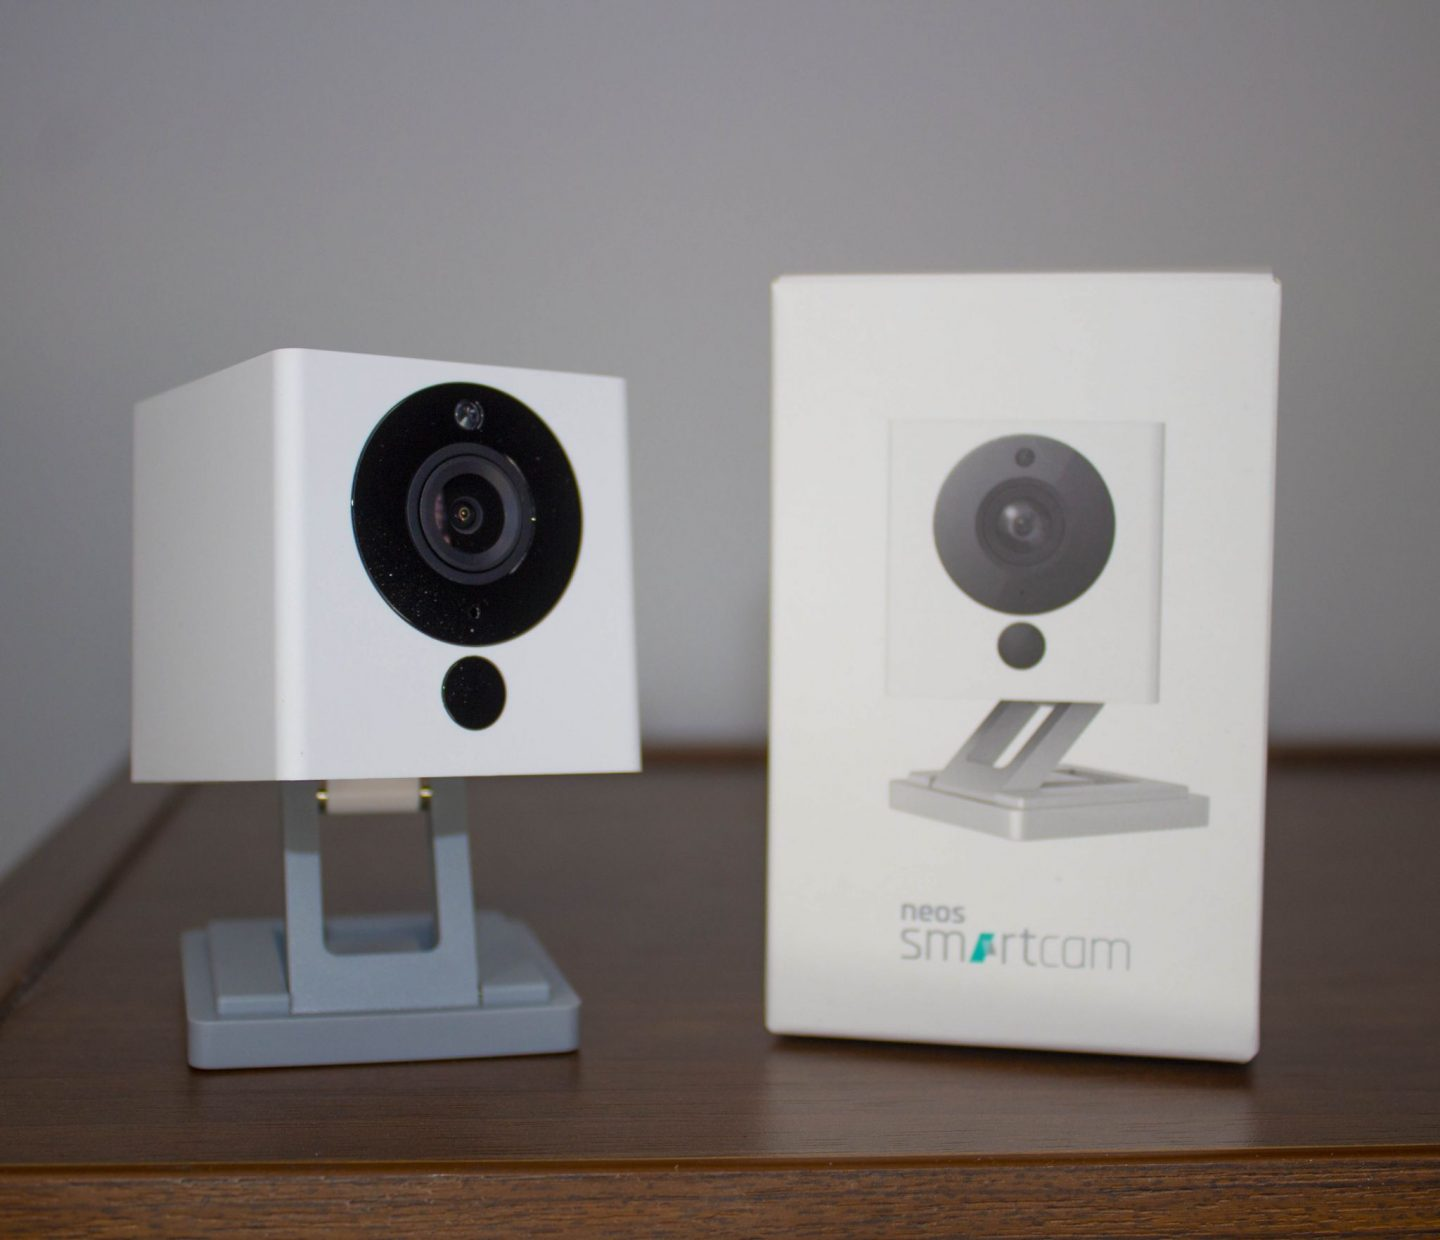 Neos Smartcam review: A cost-effective way to improve home security?